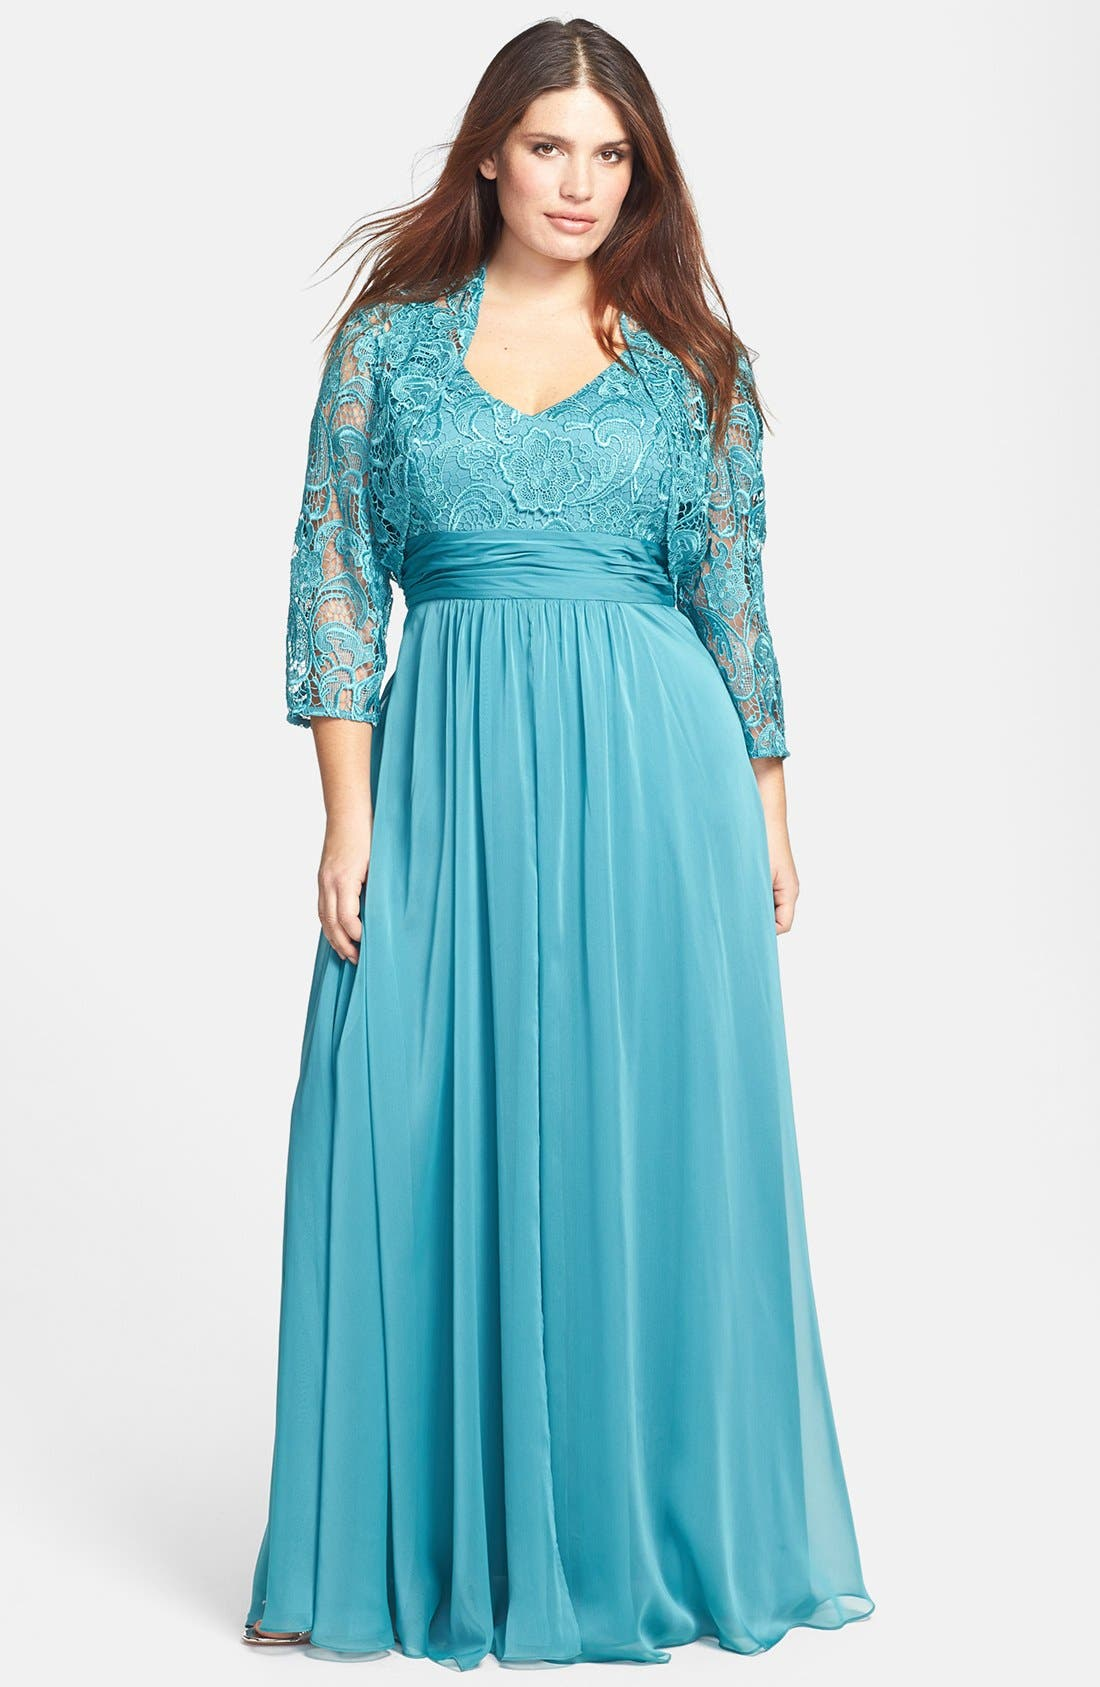 Main Image - Adrianna Papell Chiffon & Lace Gown & Jacket (Plus Size)